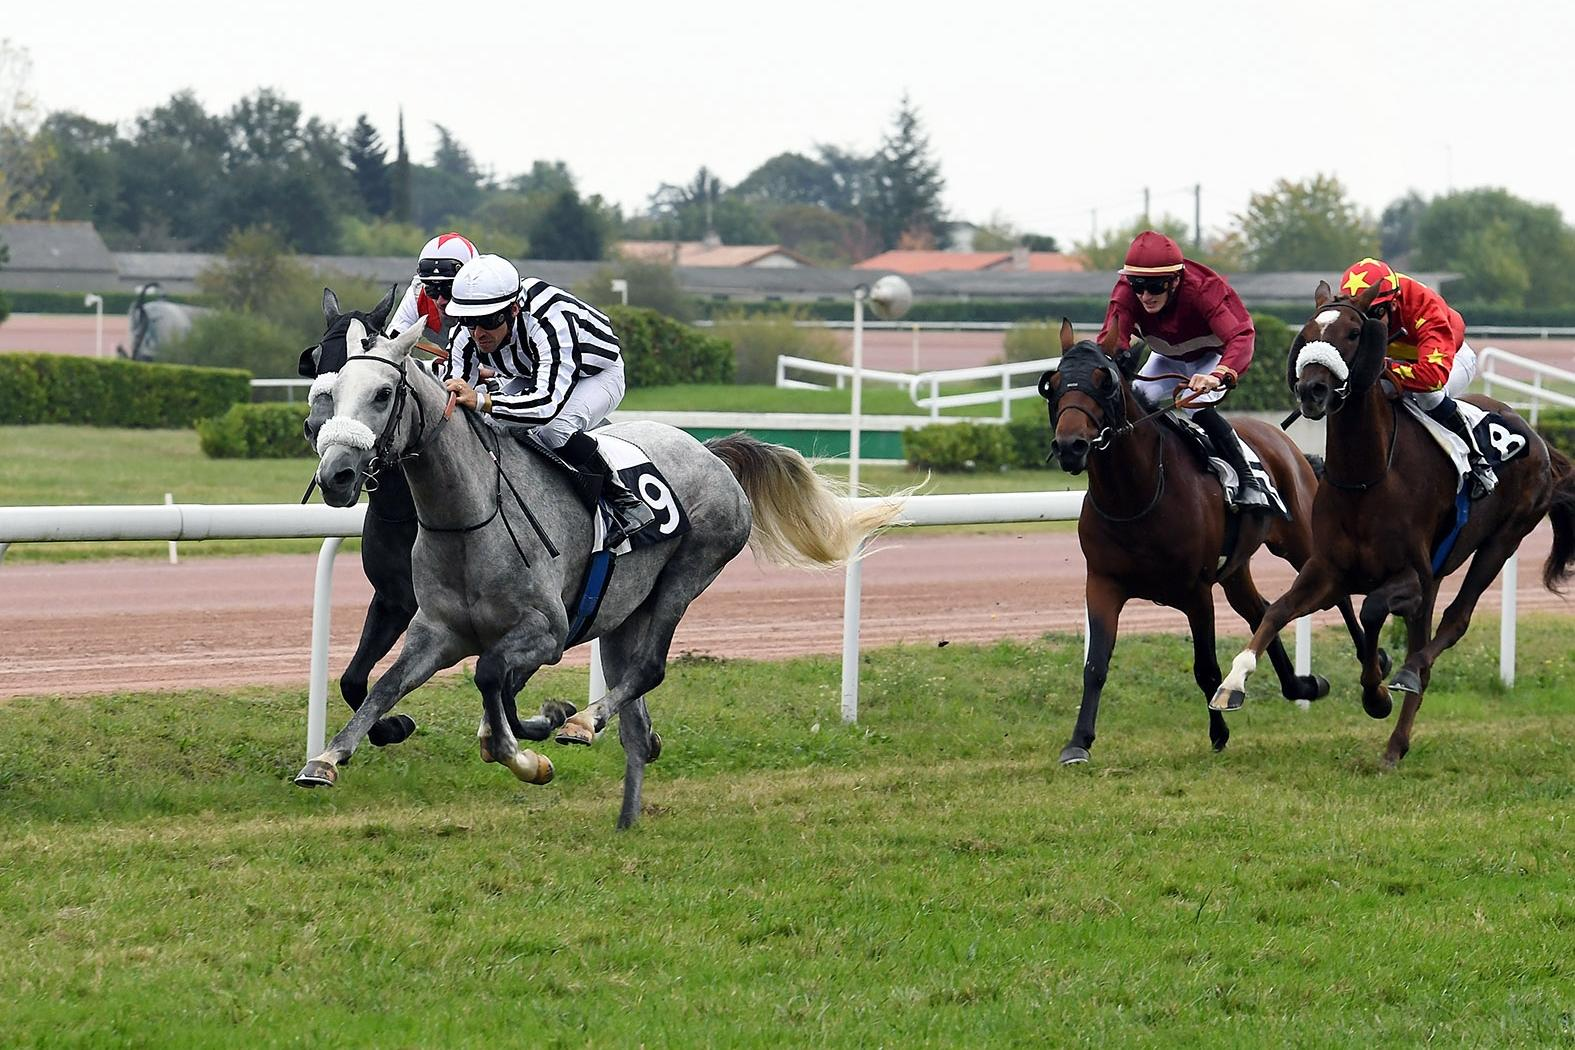 Prix Mohamed Oukili - Agen, 27 October 2019